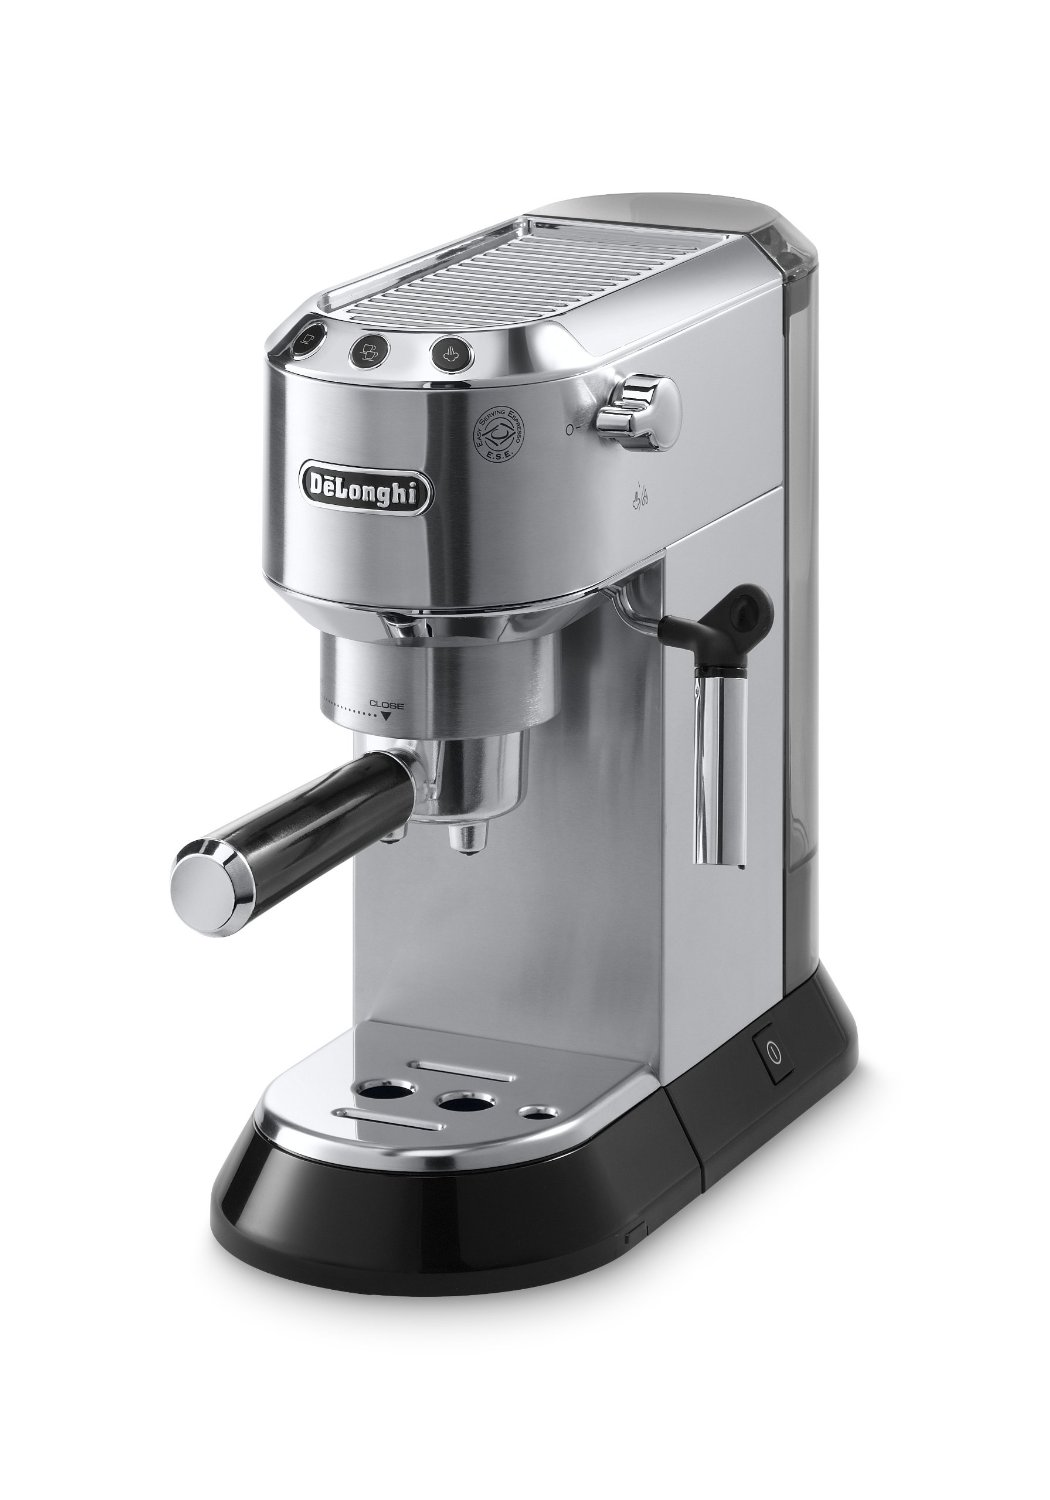 cafetiere 15 bars ou 19 bars